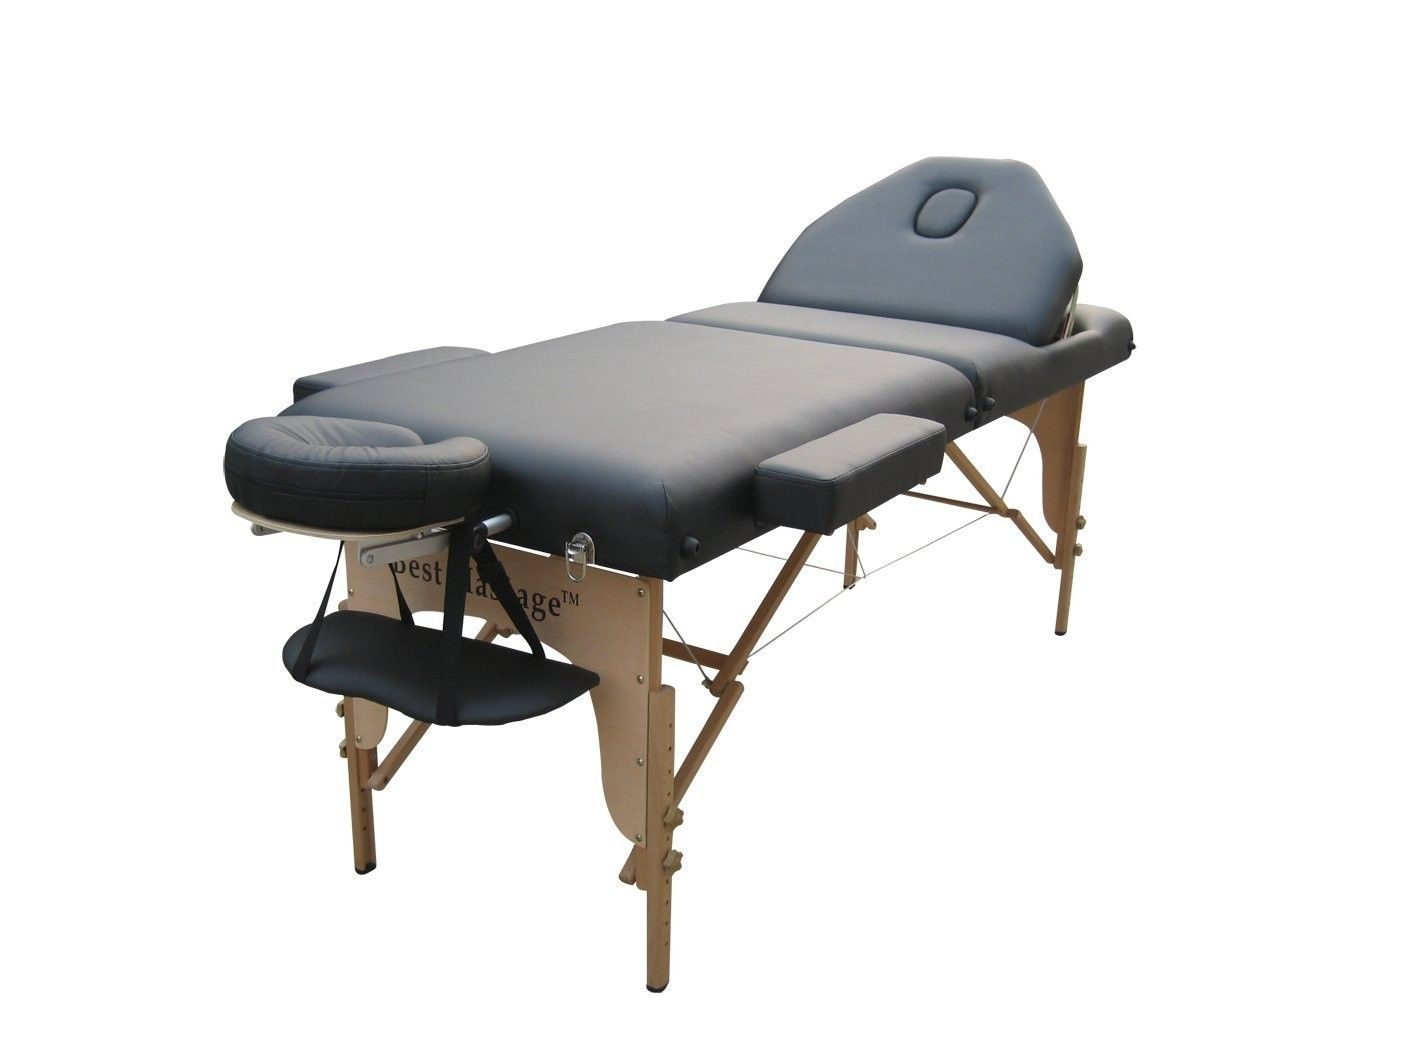 Reiki Portable Massage Table Folding Relax Therapy-2481